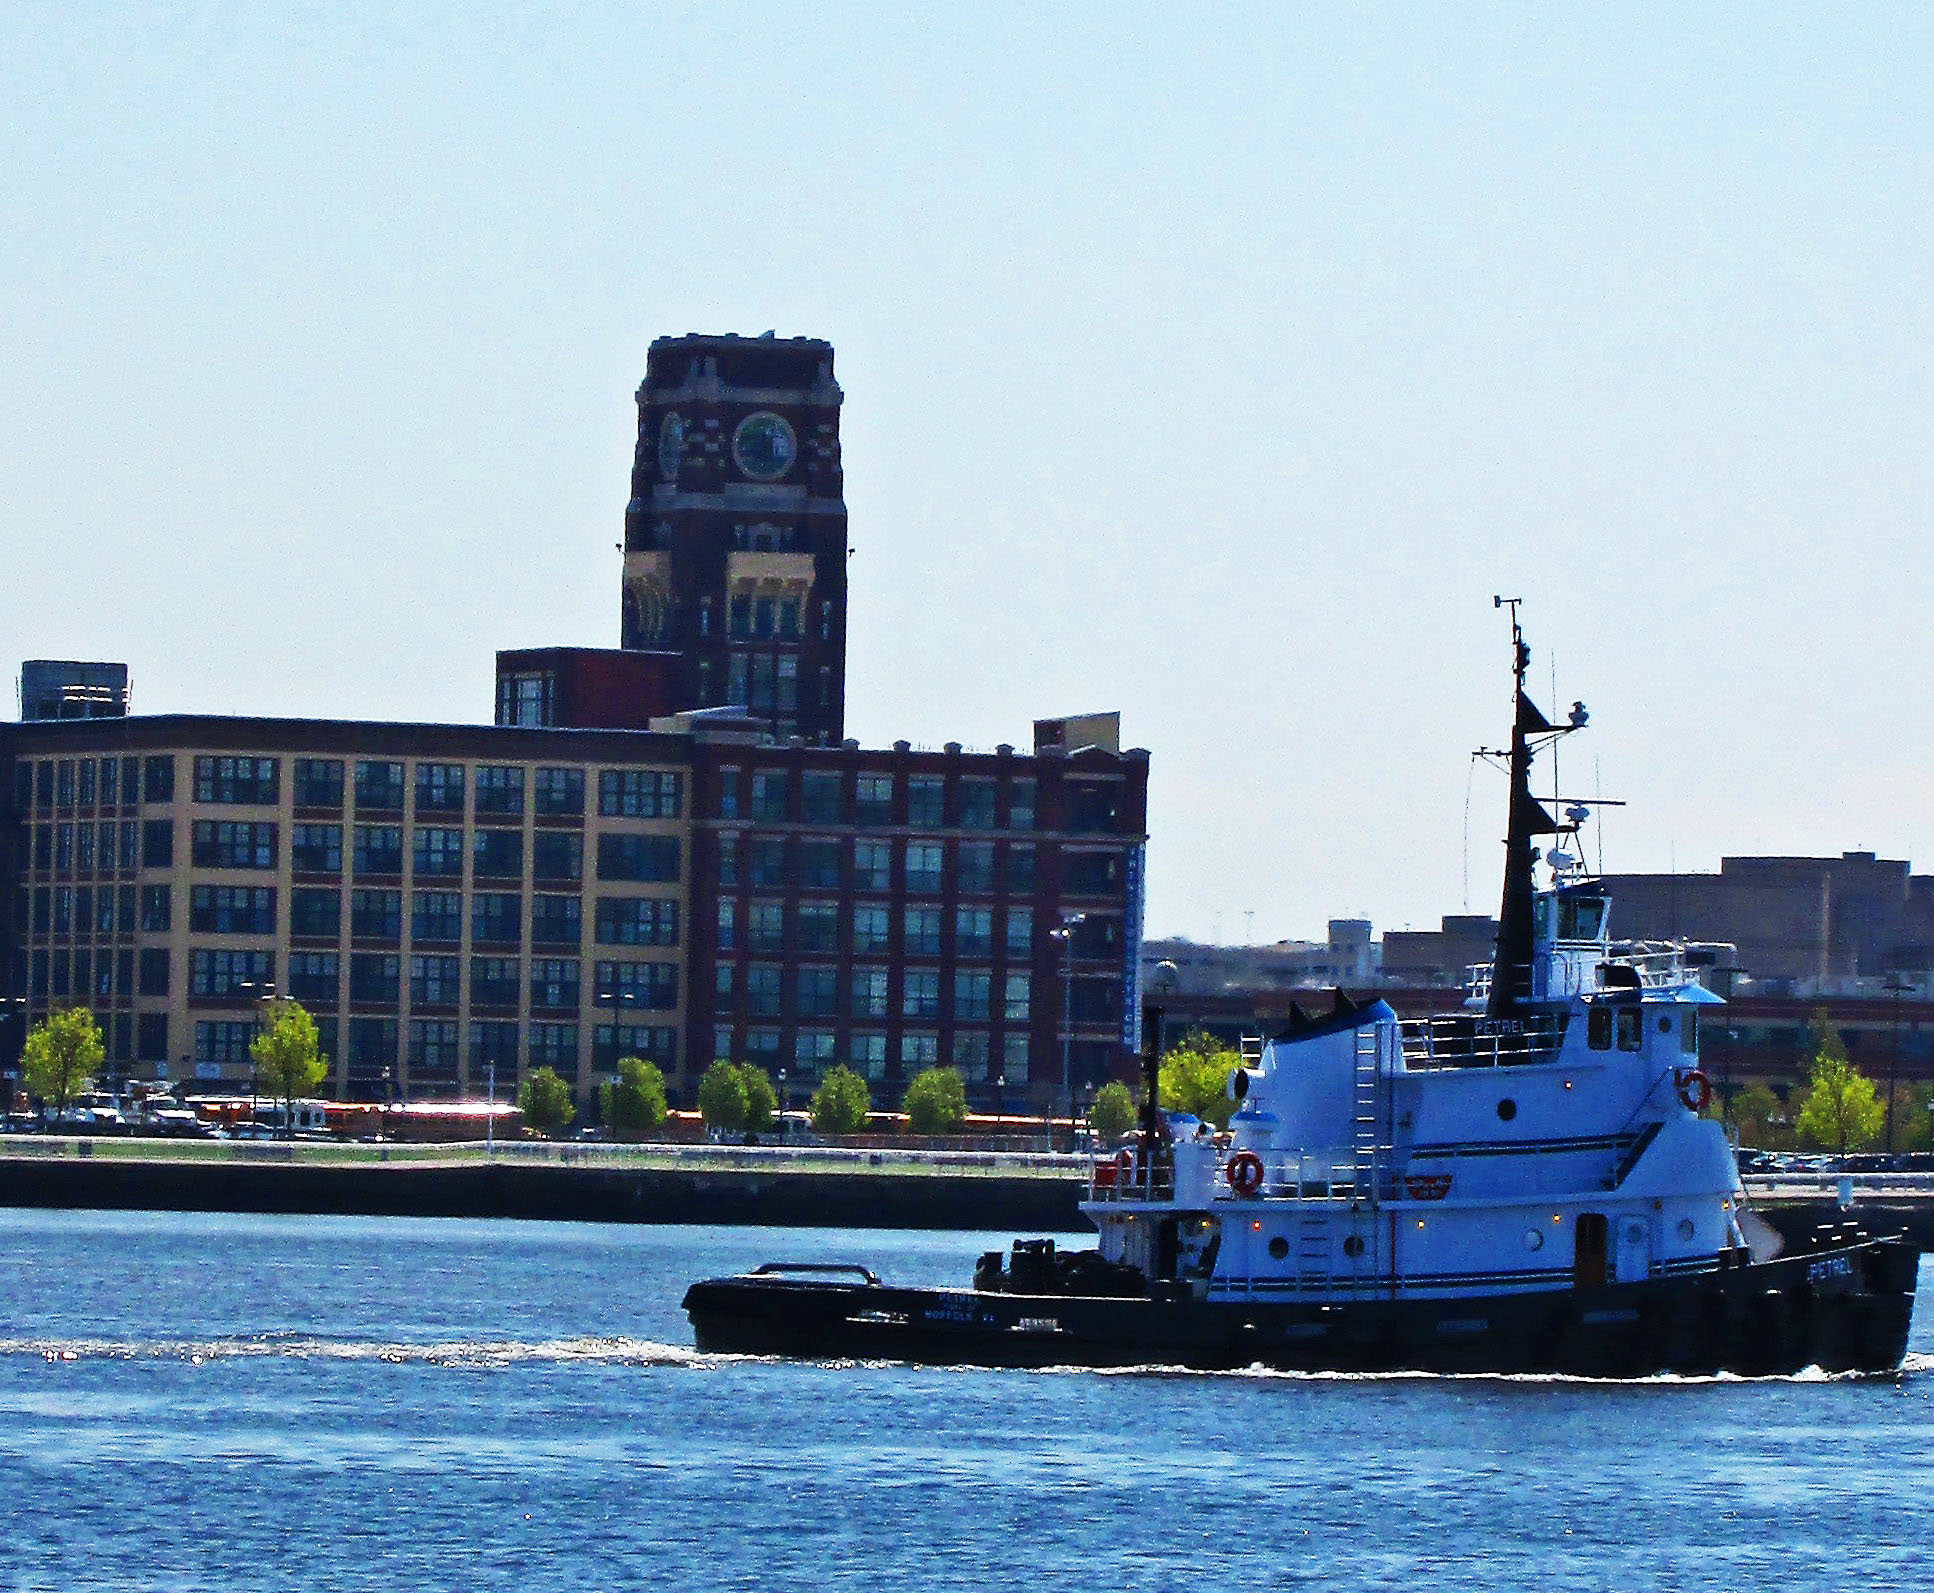 Tug Boat Petrel Passing The Old RCA Building In Camden NJ